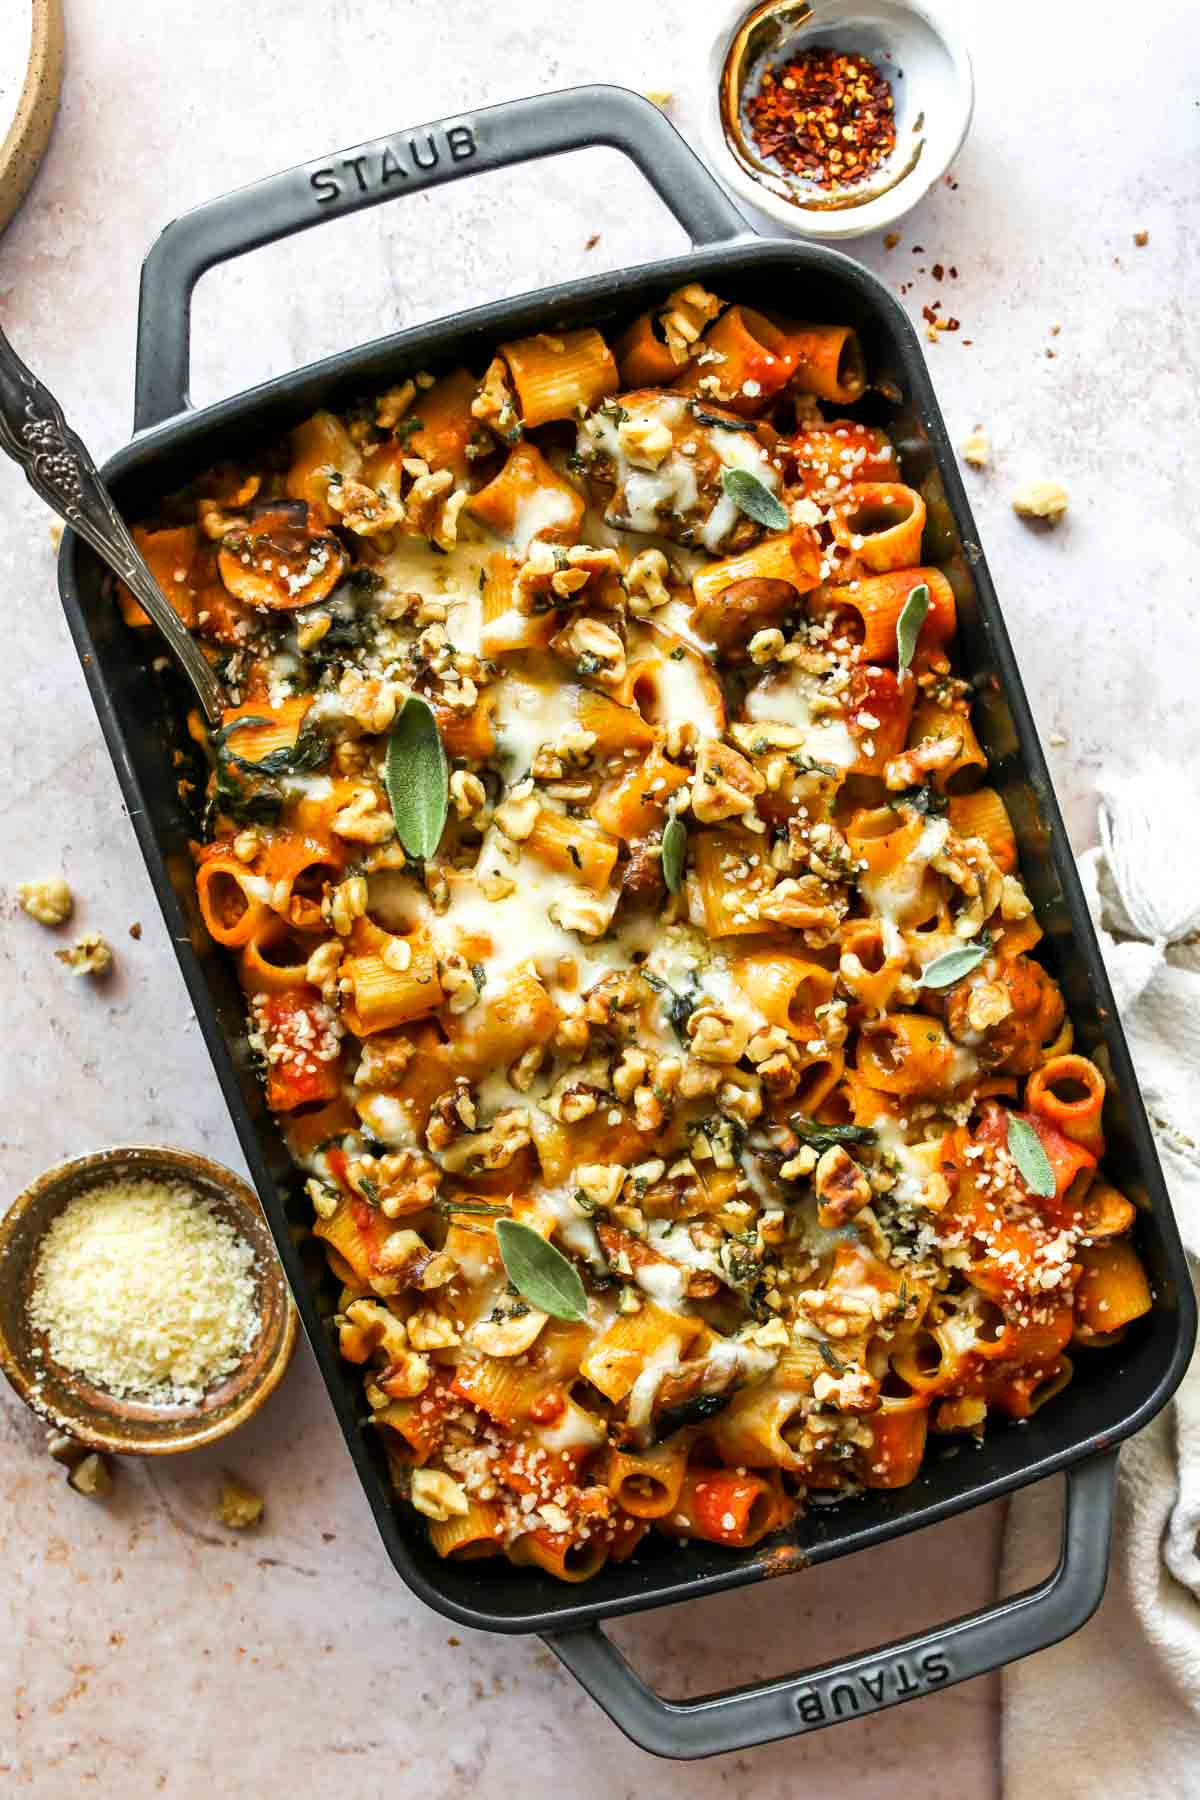 Cheesy pumpkin pasta in a baking dish topped with walnuts and sage